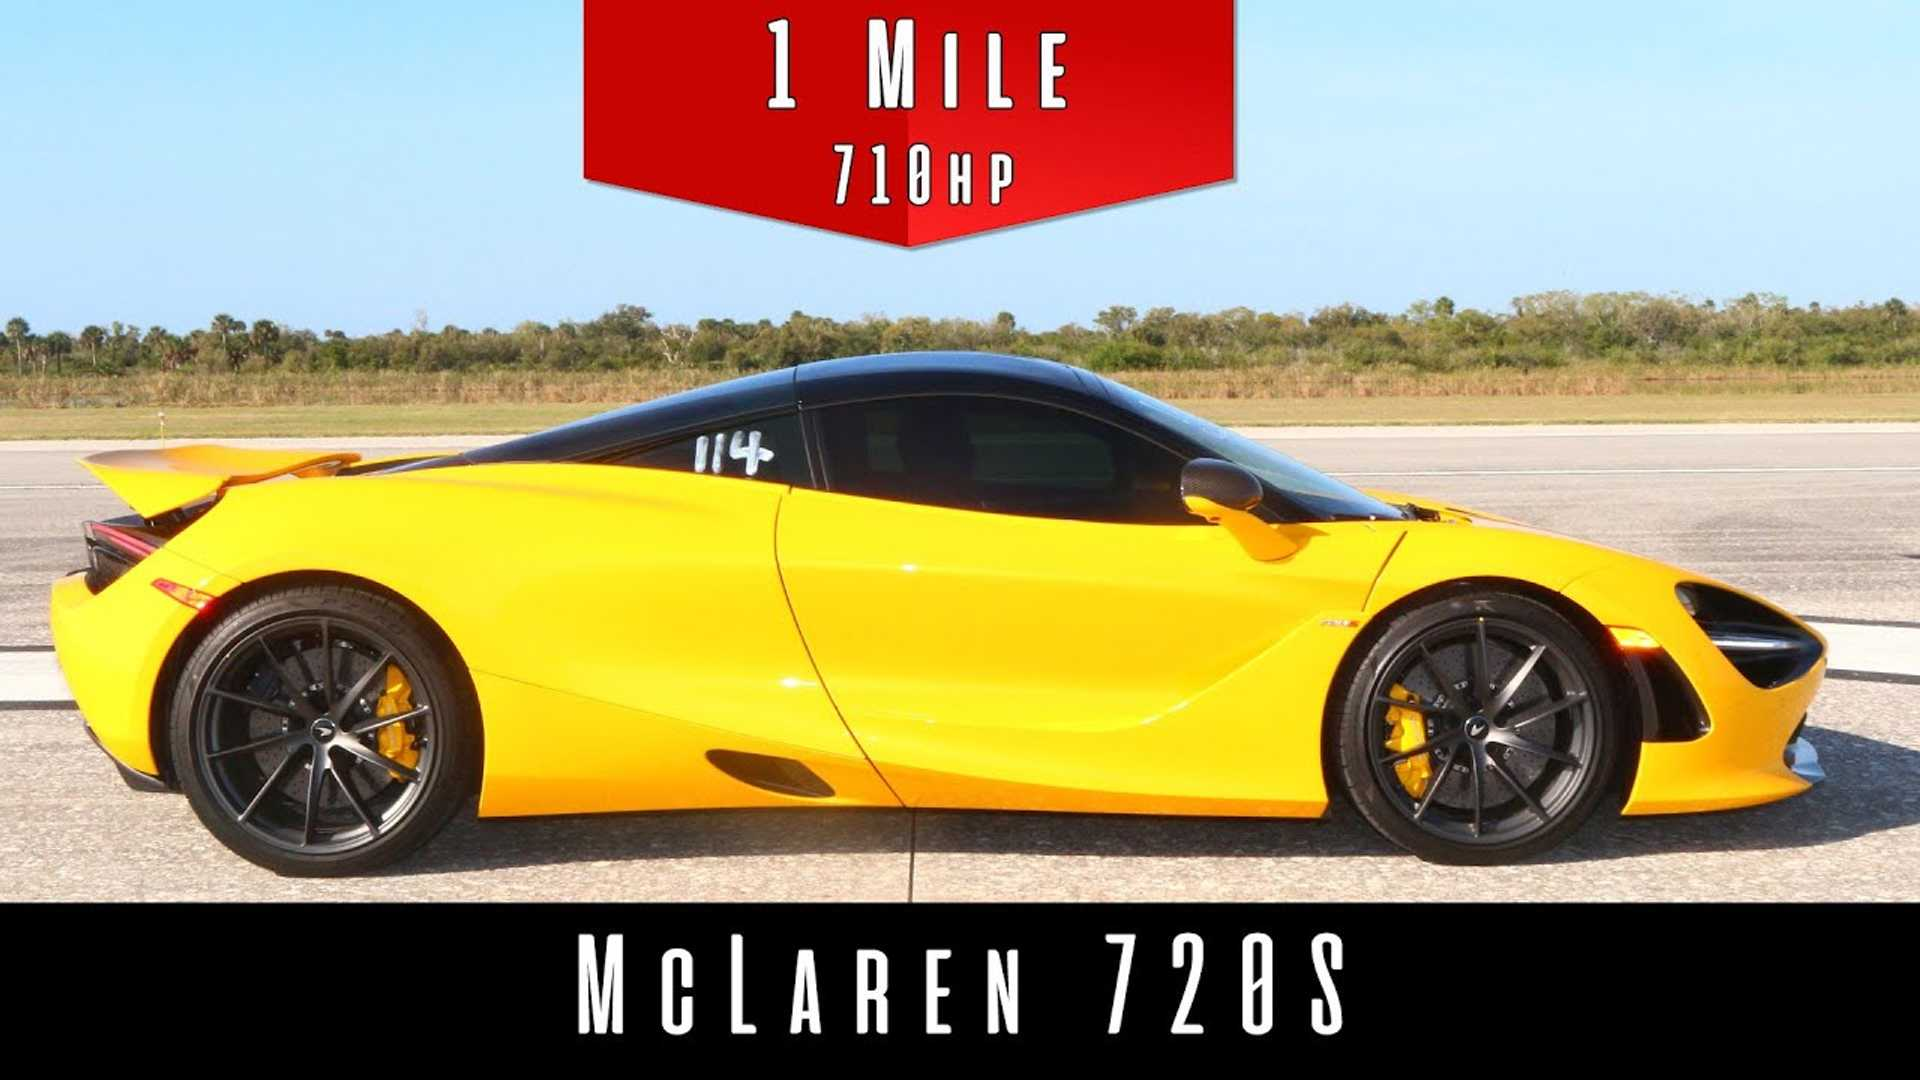 2019 McLaren 720S – One-Mile Top Speed